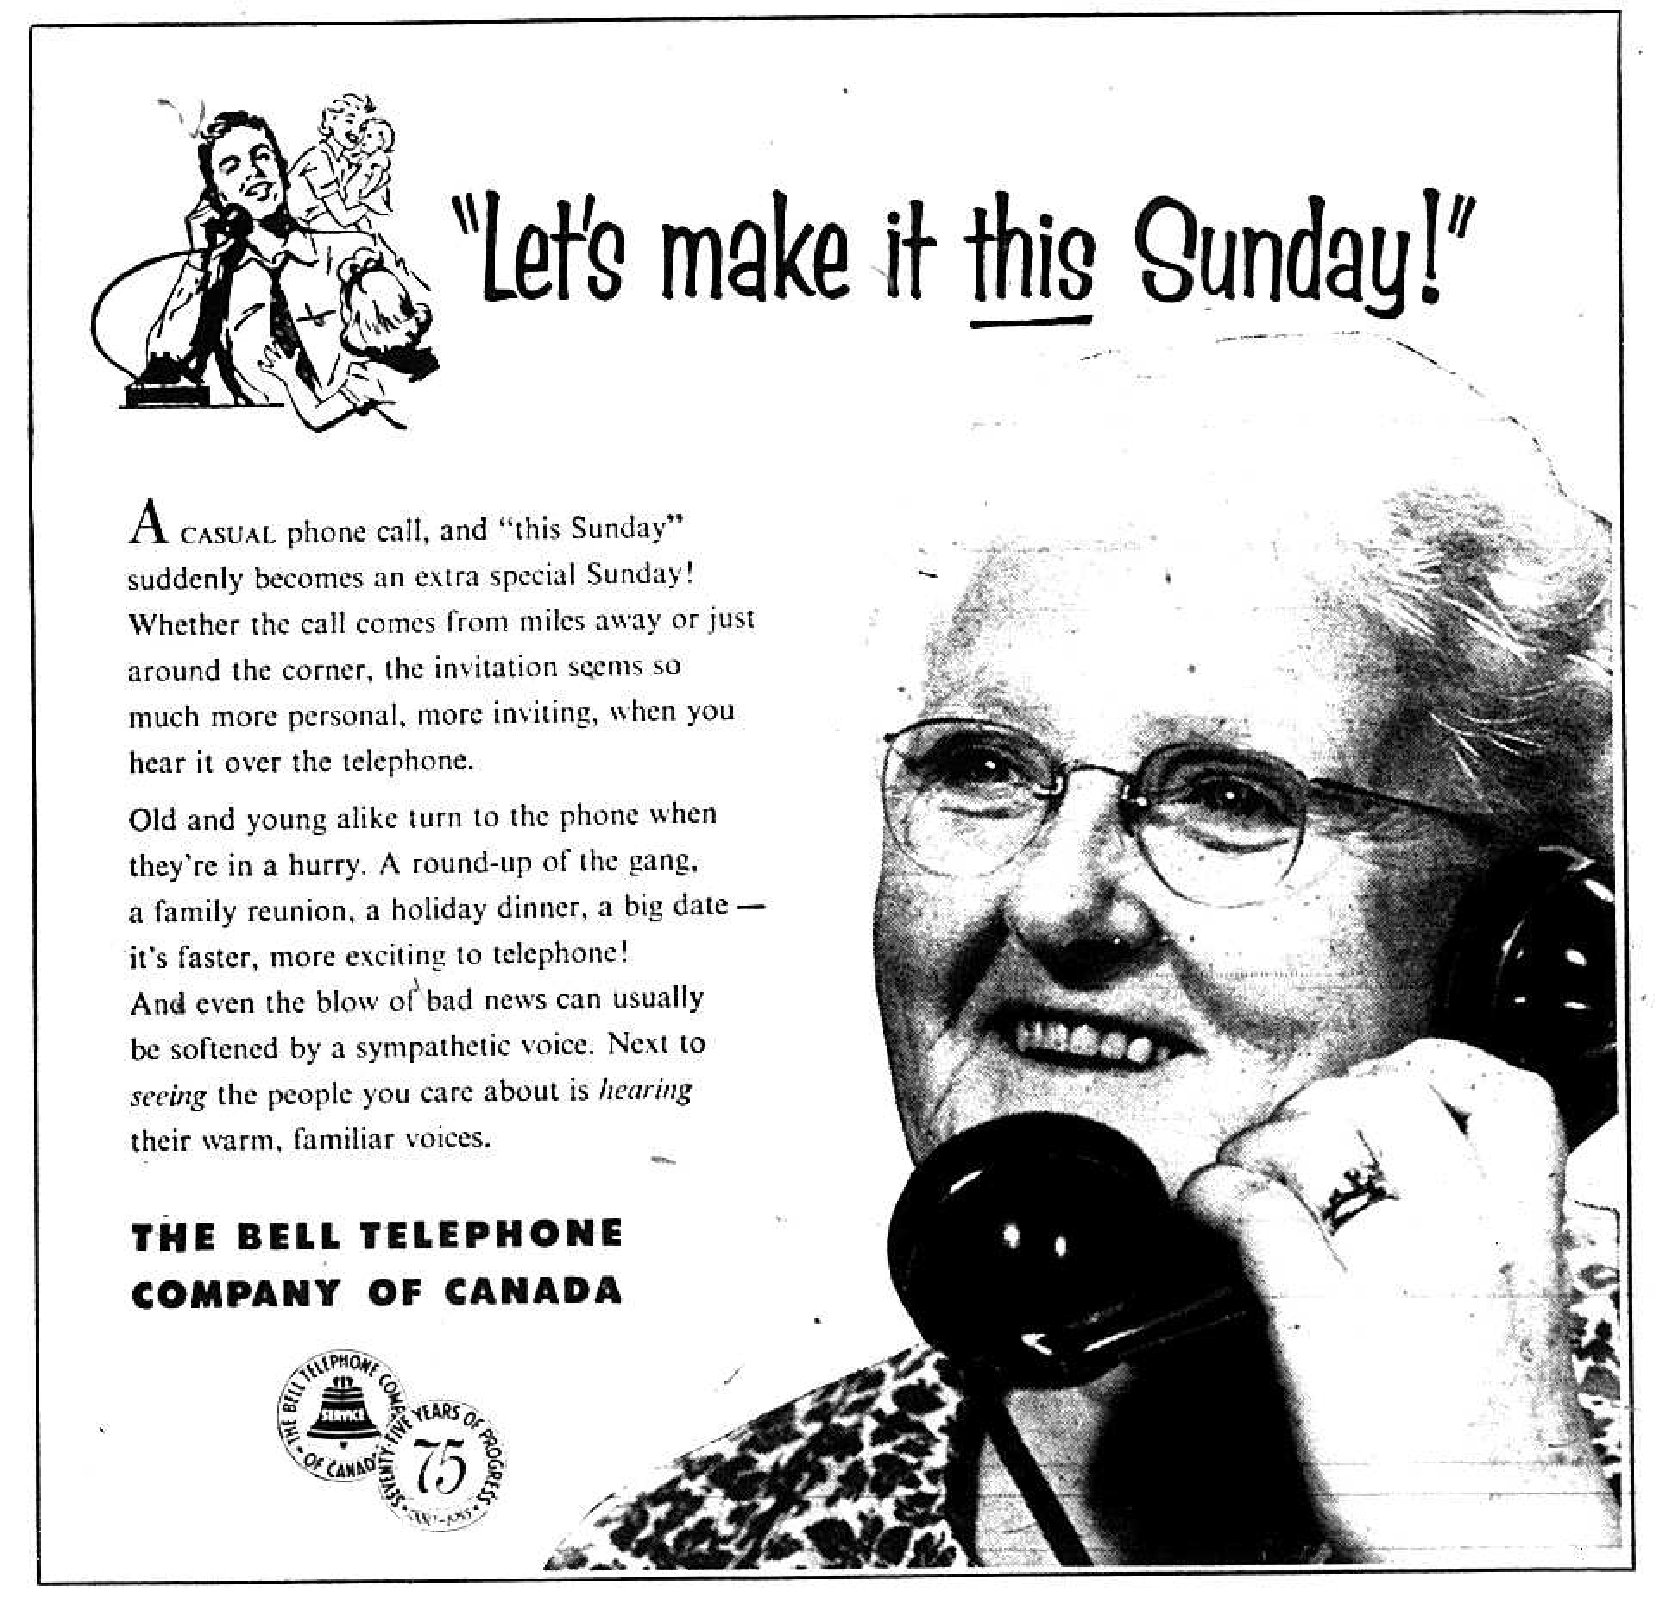 The Bell Telephone Company of Canada Advertisement, 1955